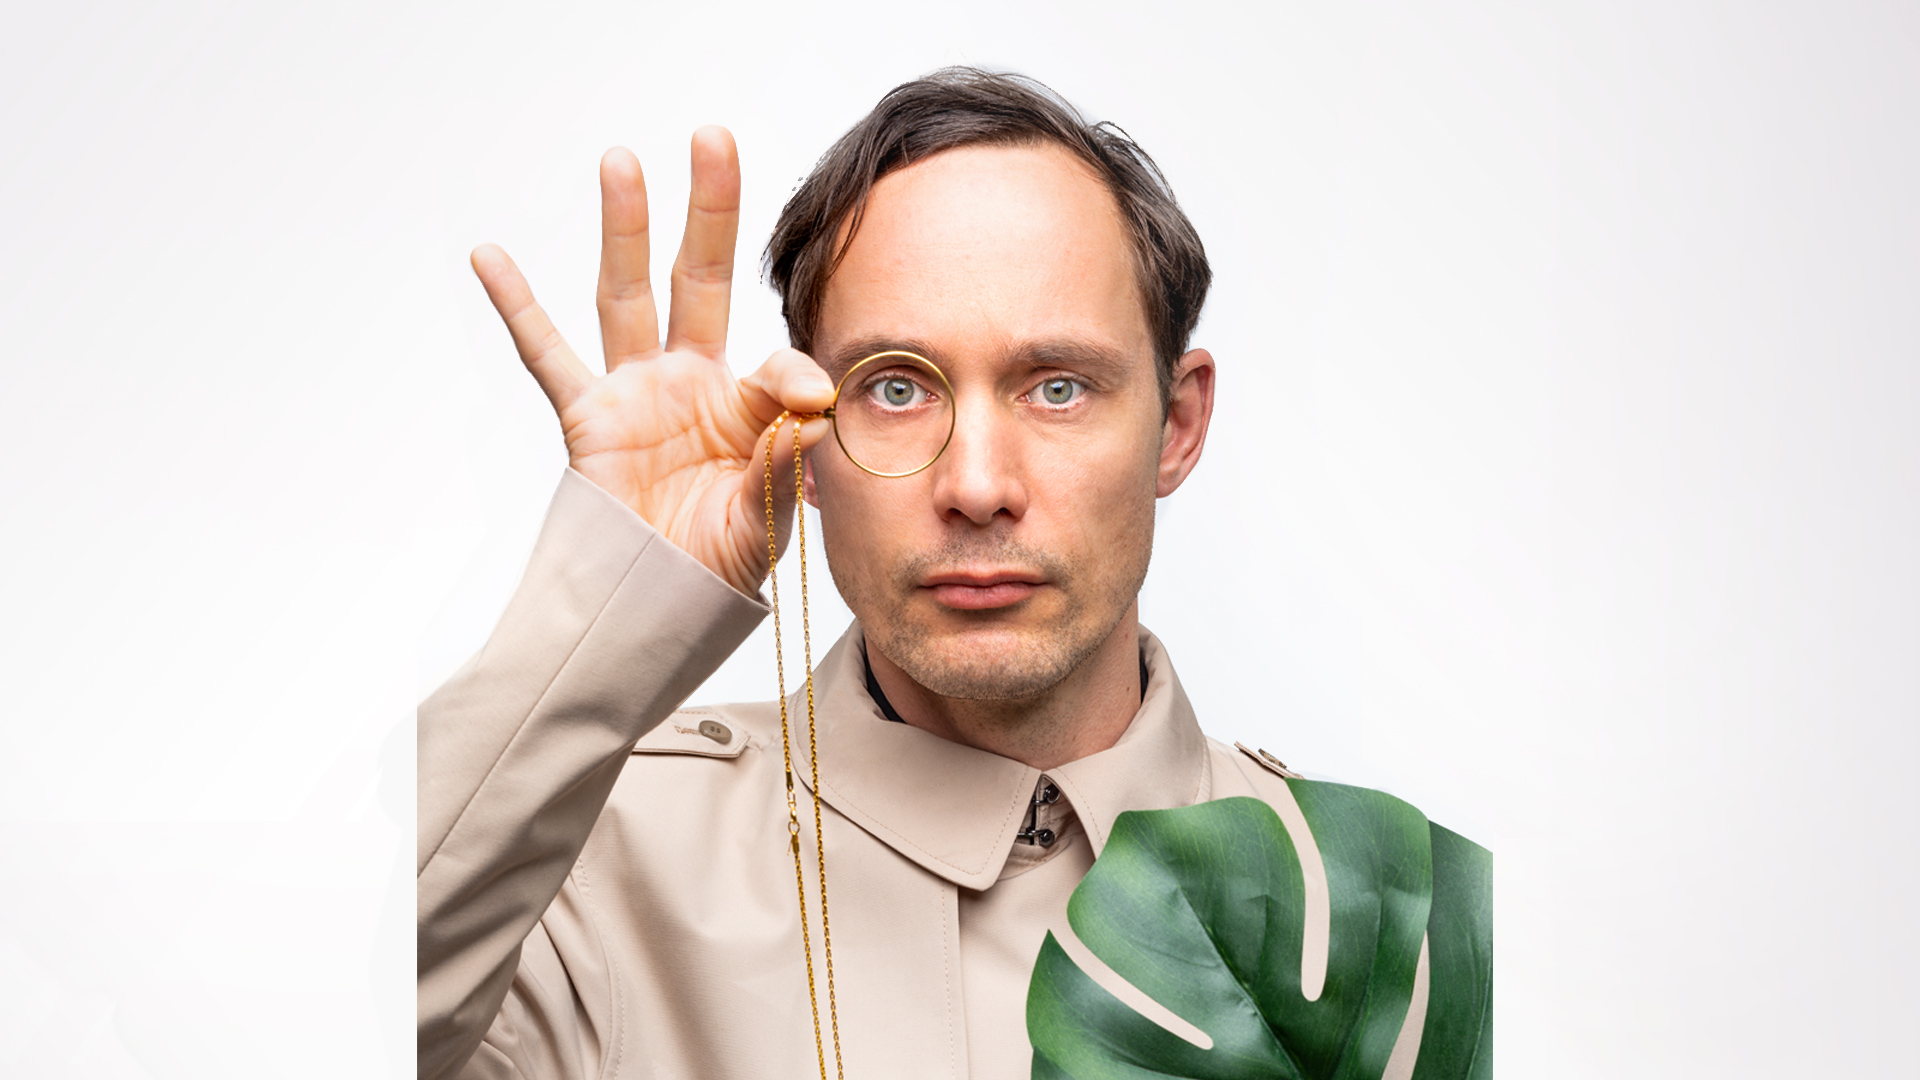 5. Naumburger Theaterspaziergang